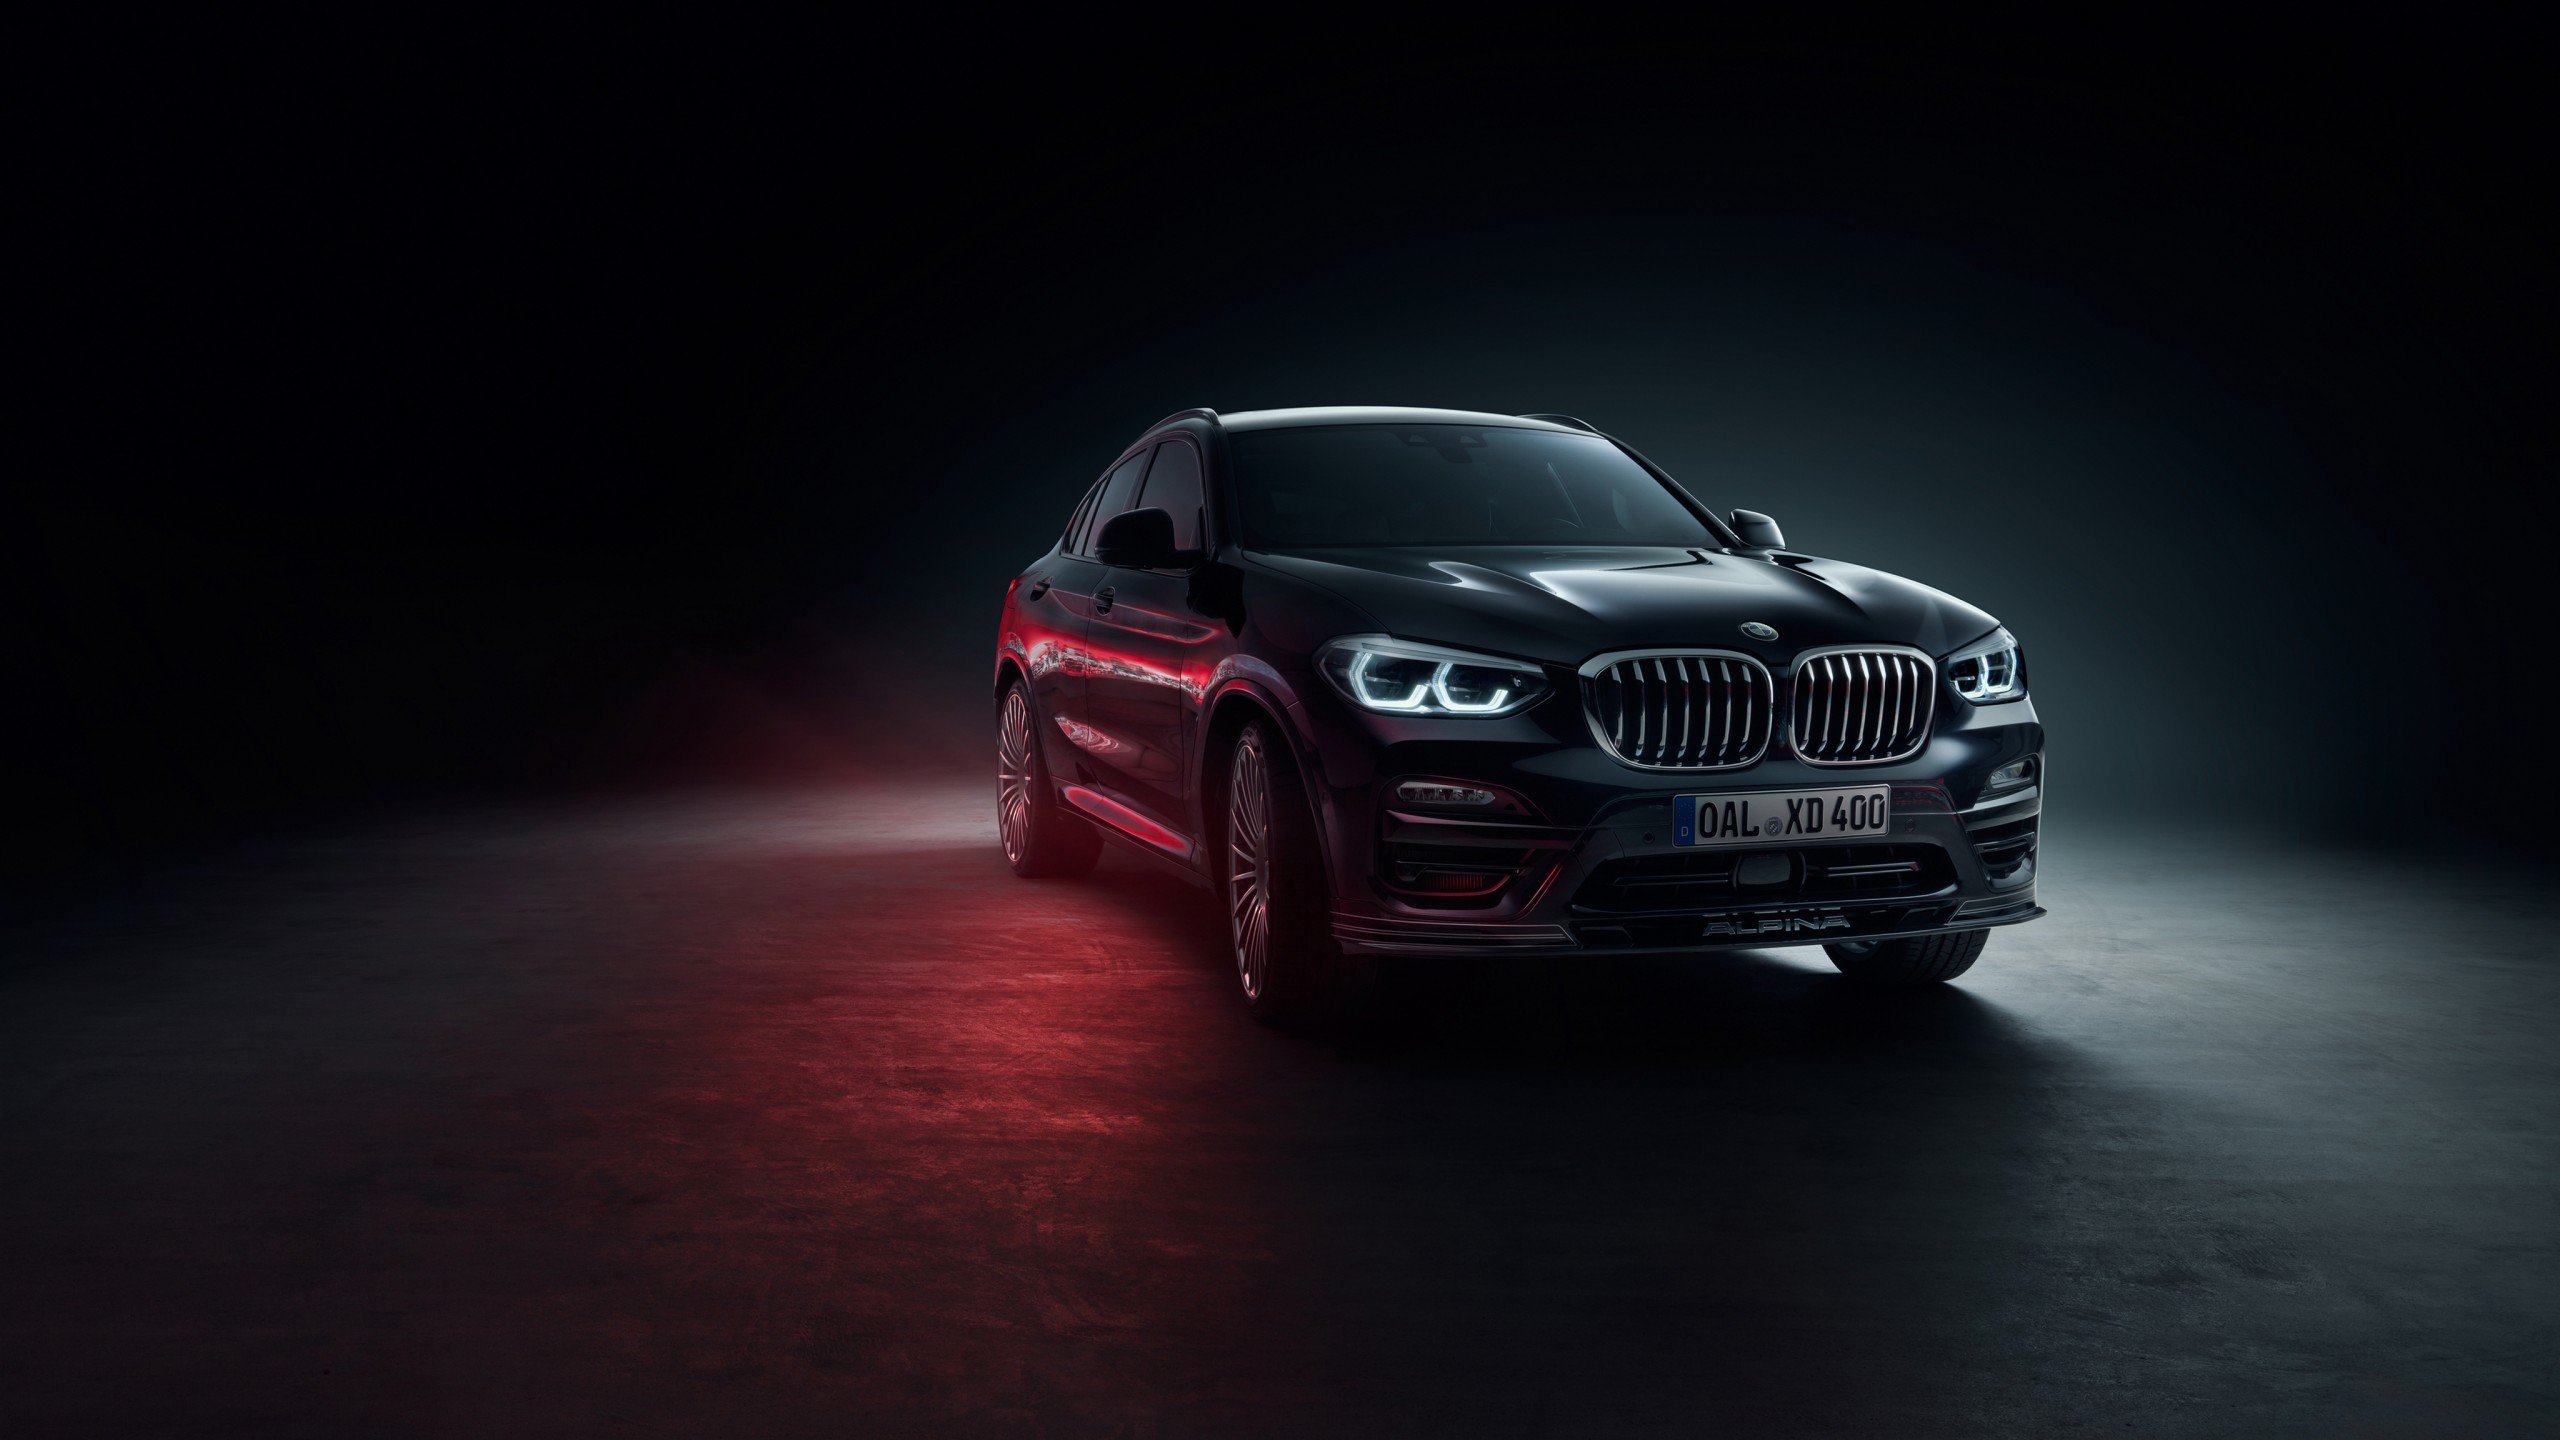 2018 Alpina BMW xD4 Allrad 4K 4 Wallpaper | HD Car ...